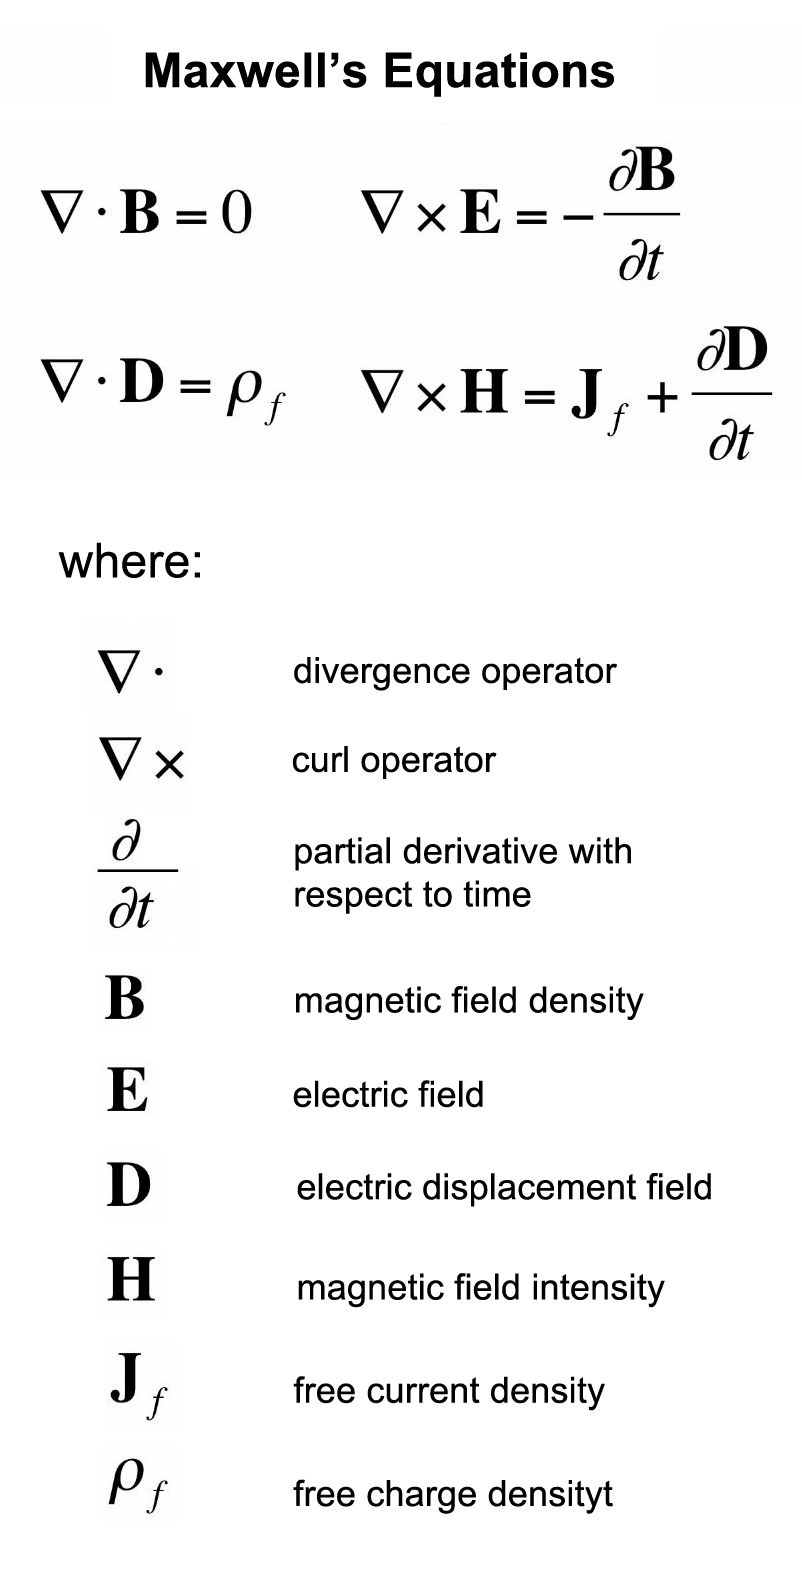 Maxwell's equations in differential form